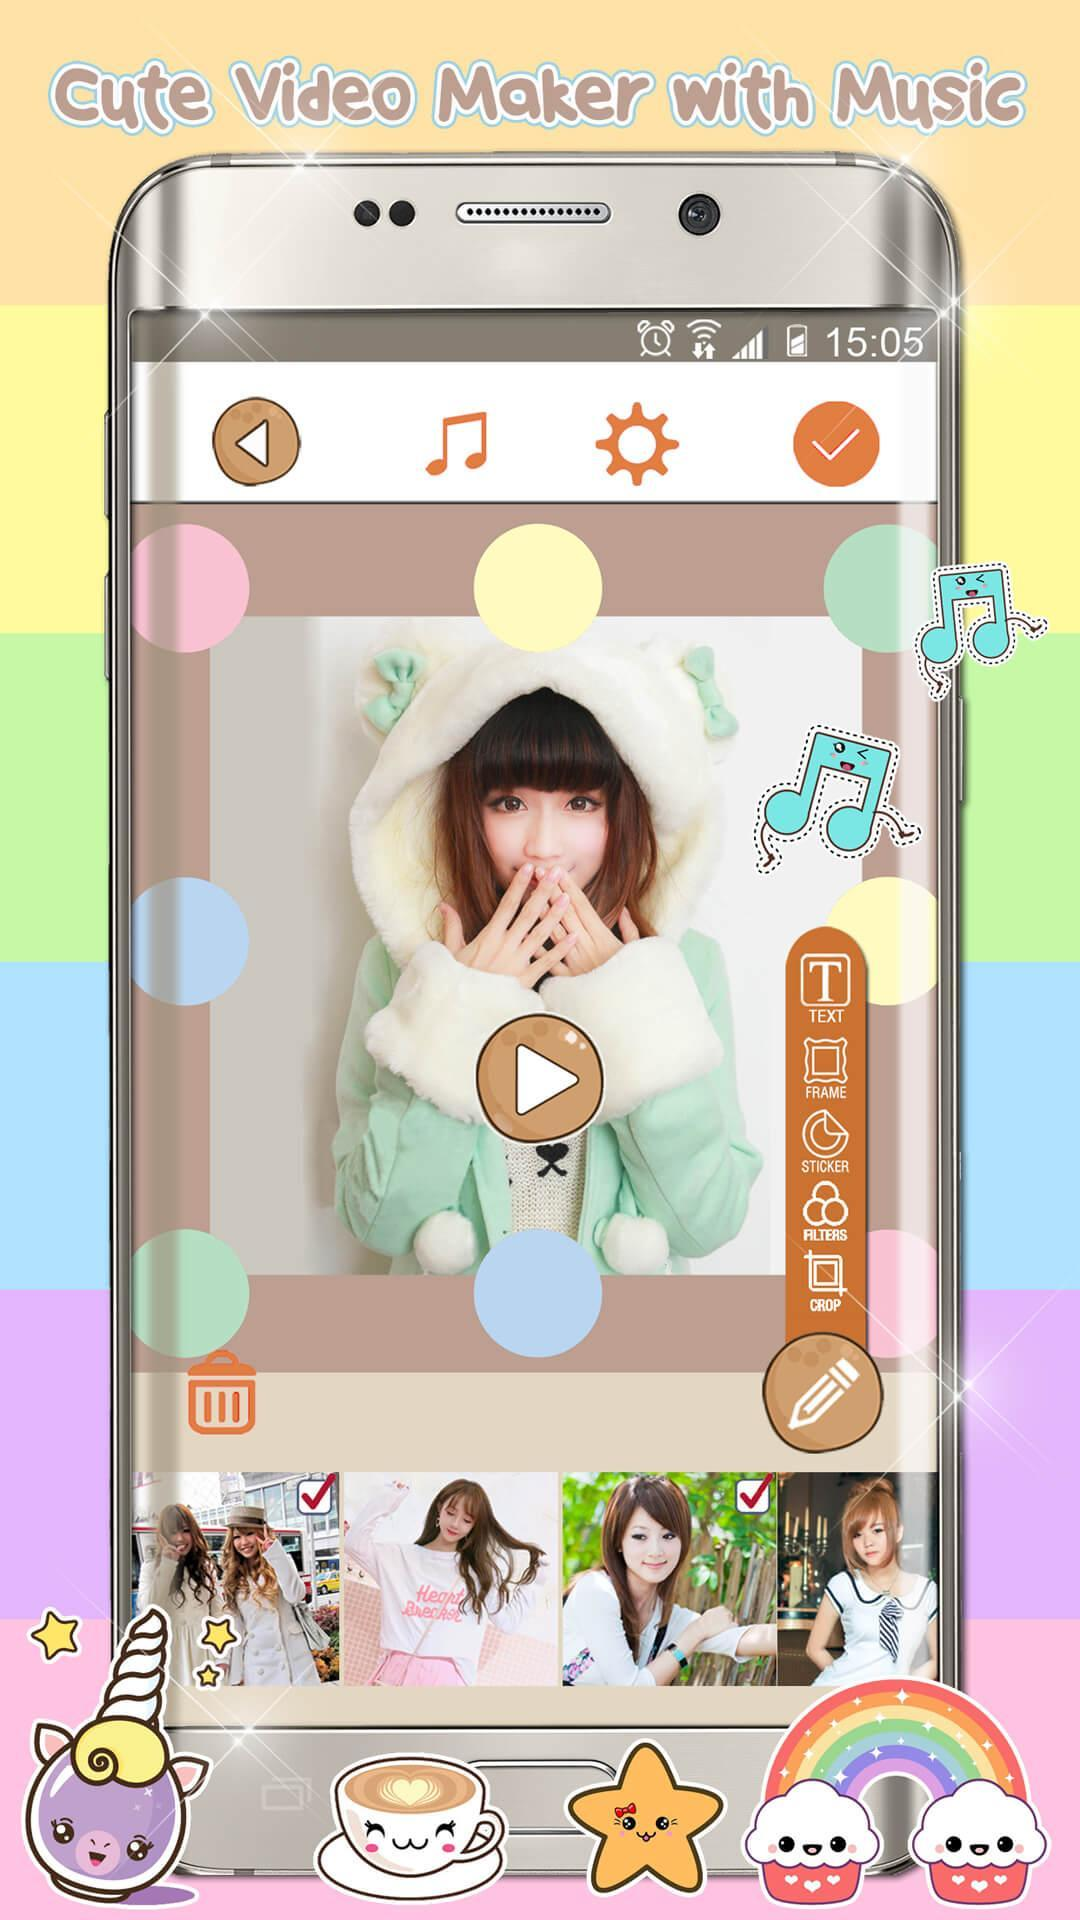 Kawaii Video Editor for Android - APK Download